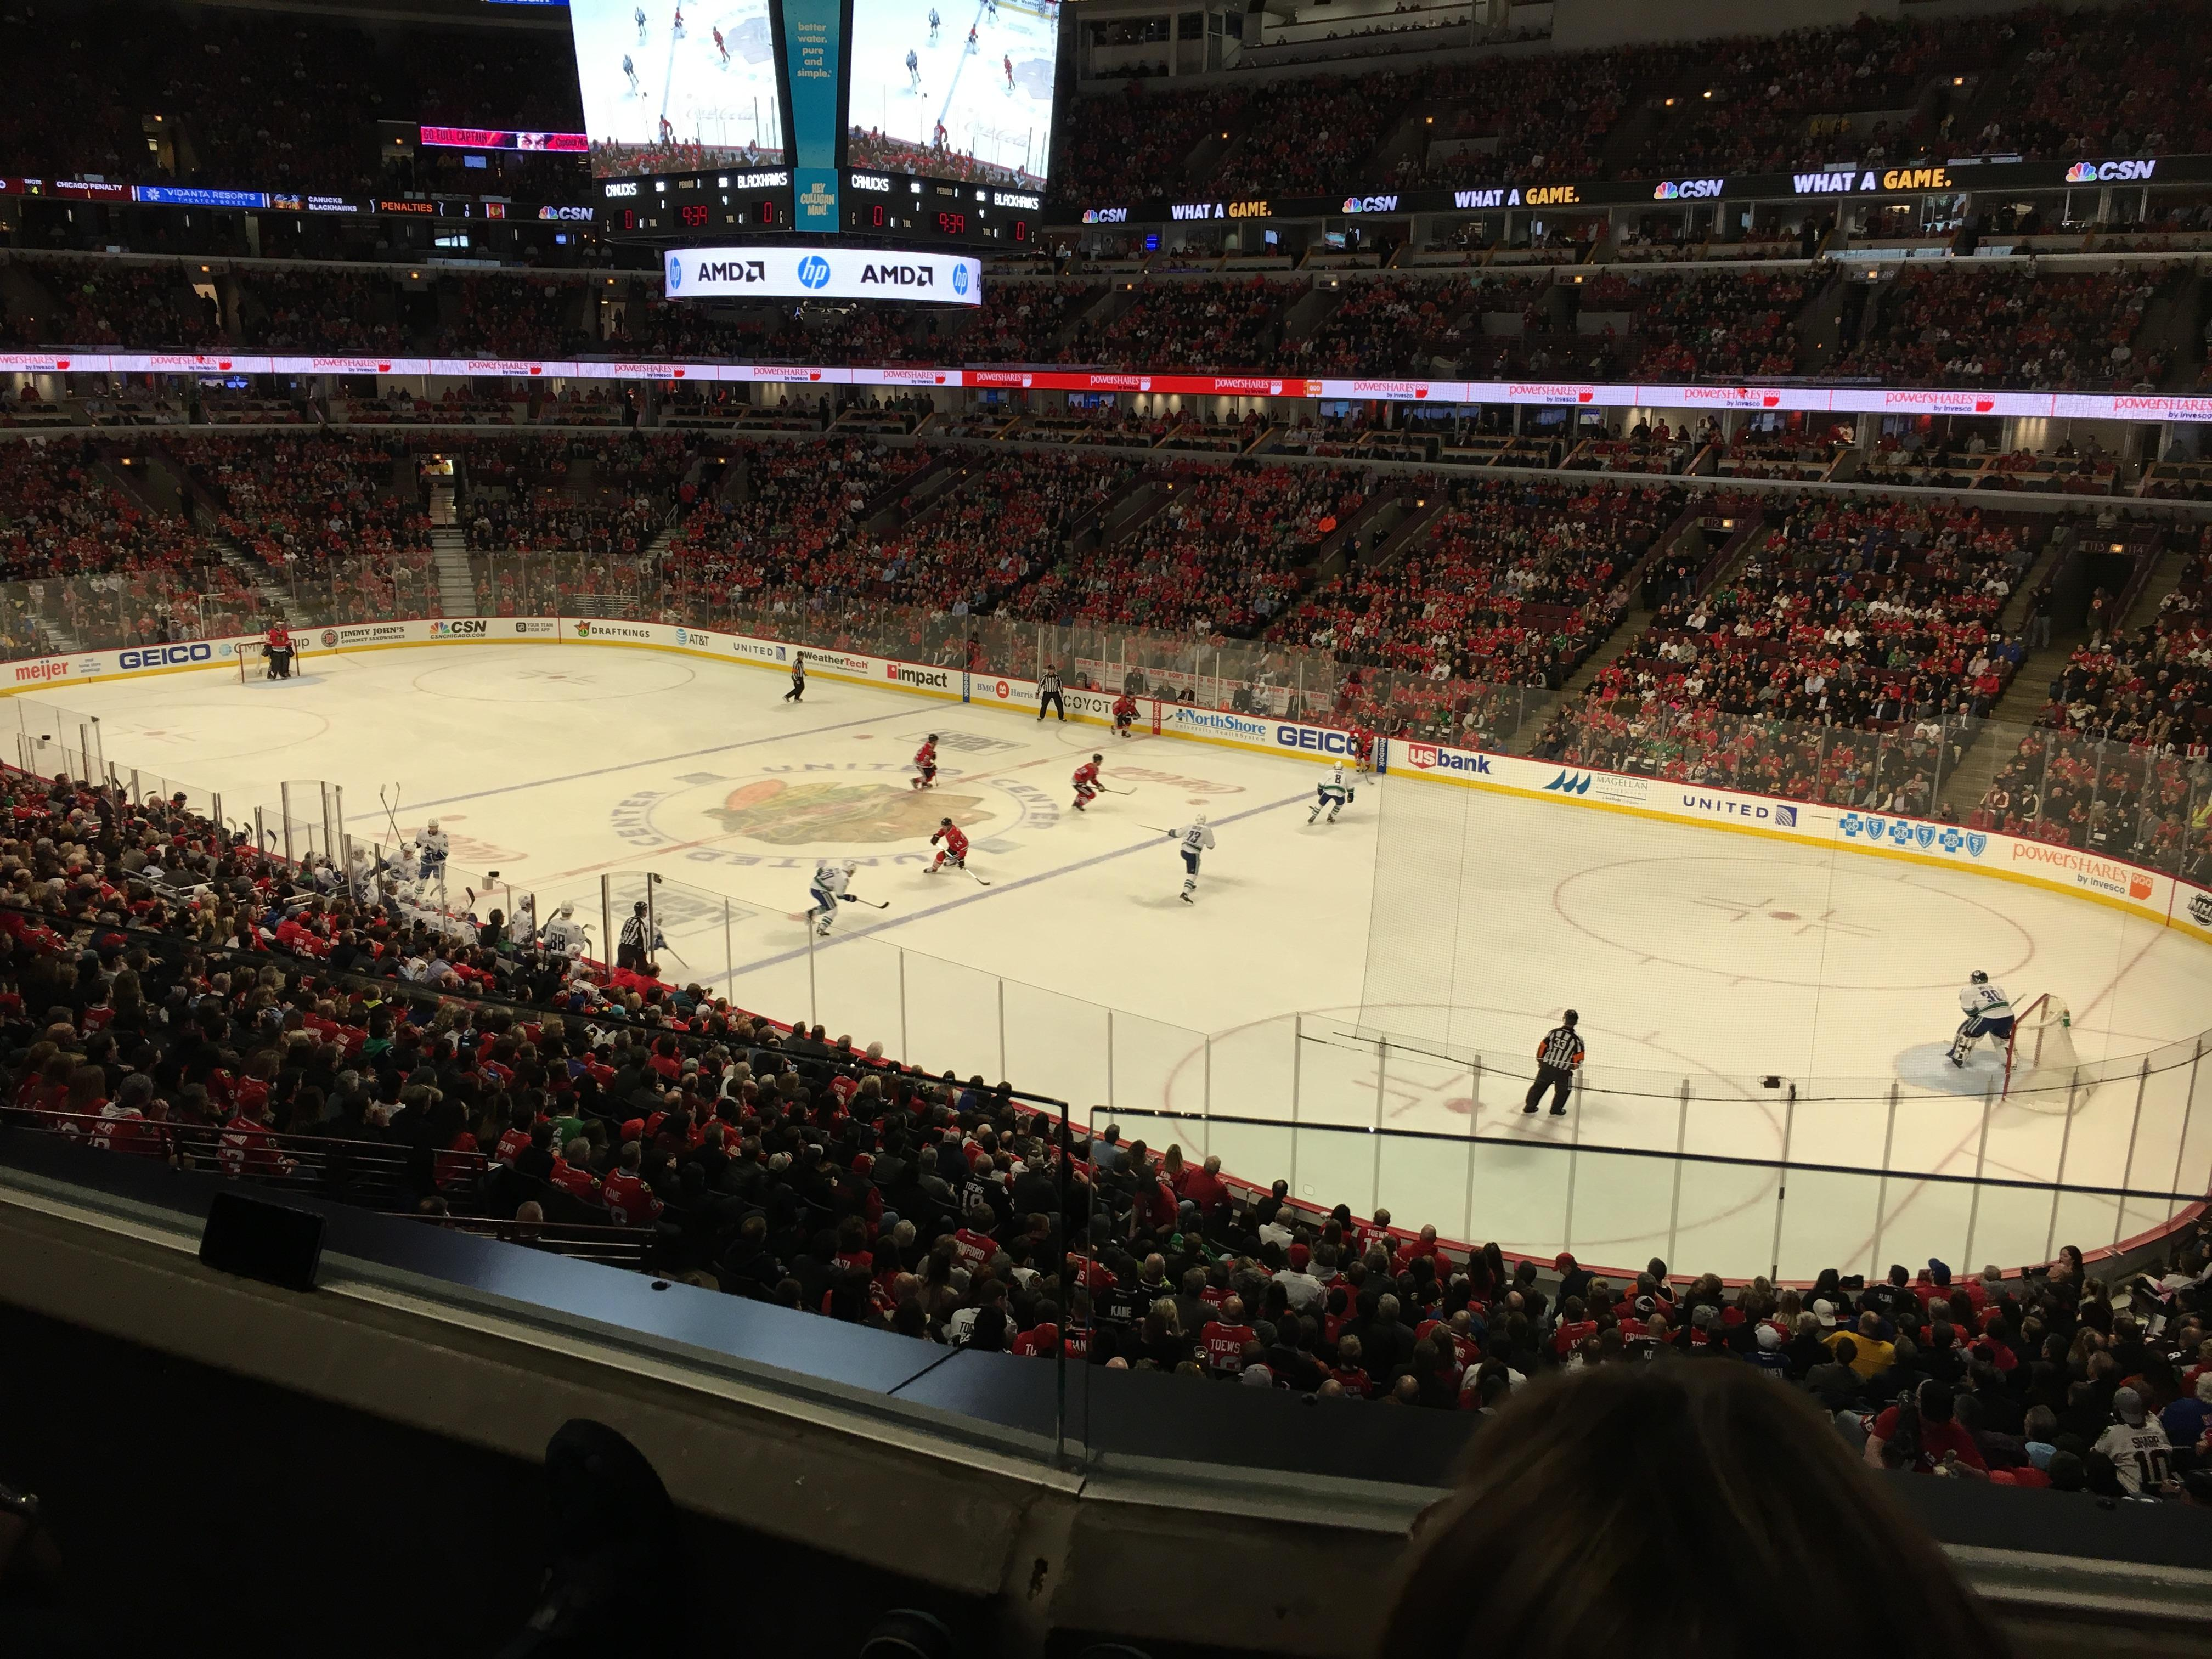 United Center Section 231 Row 2 Seat 7